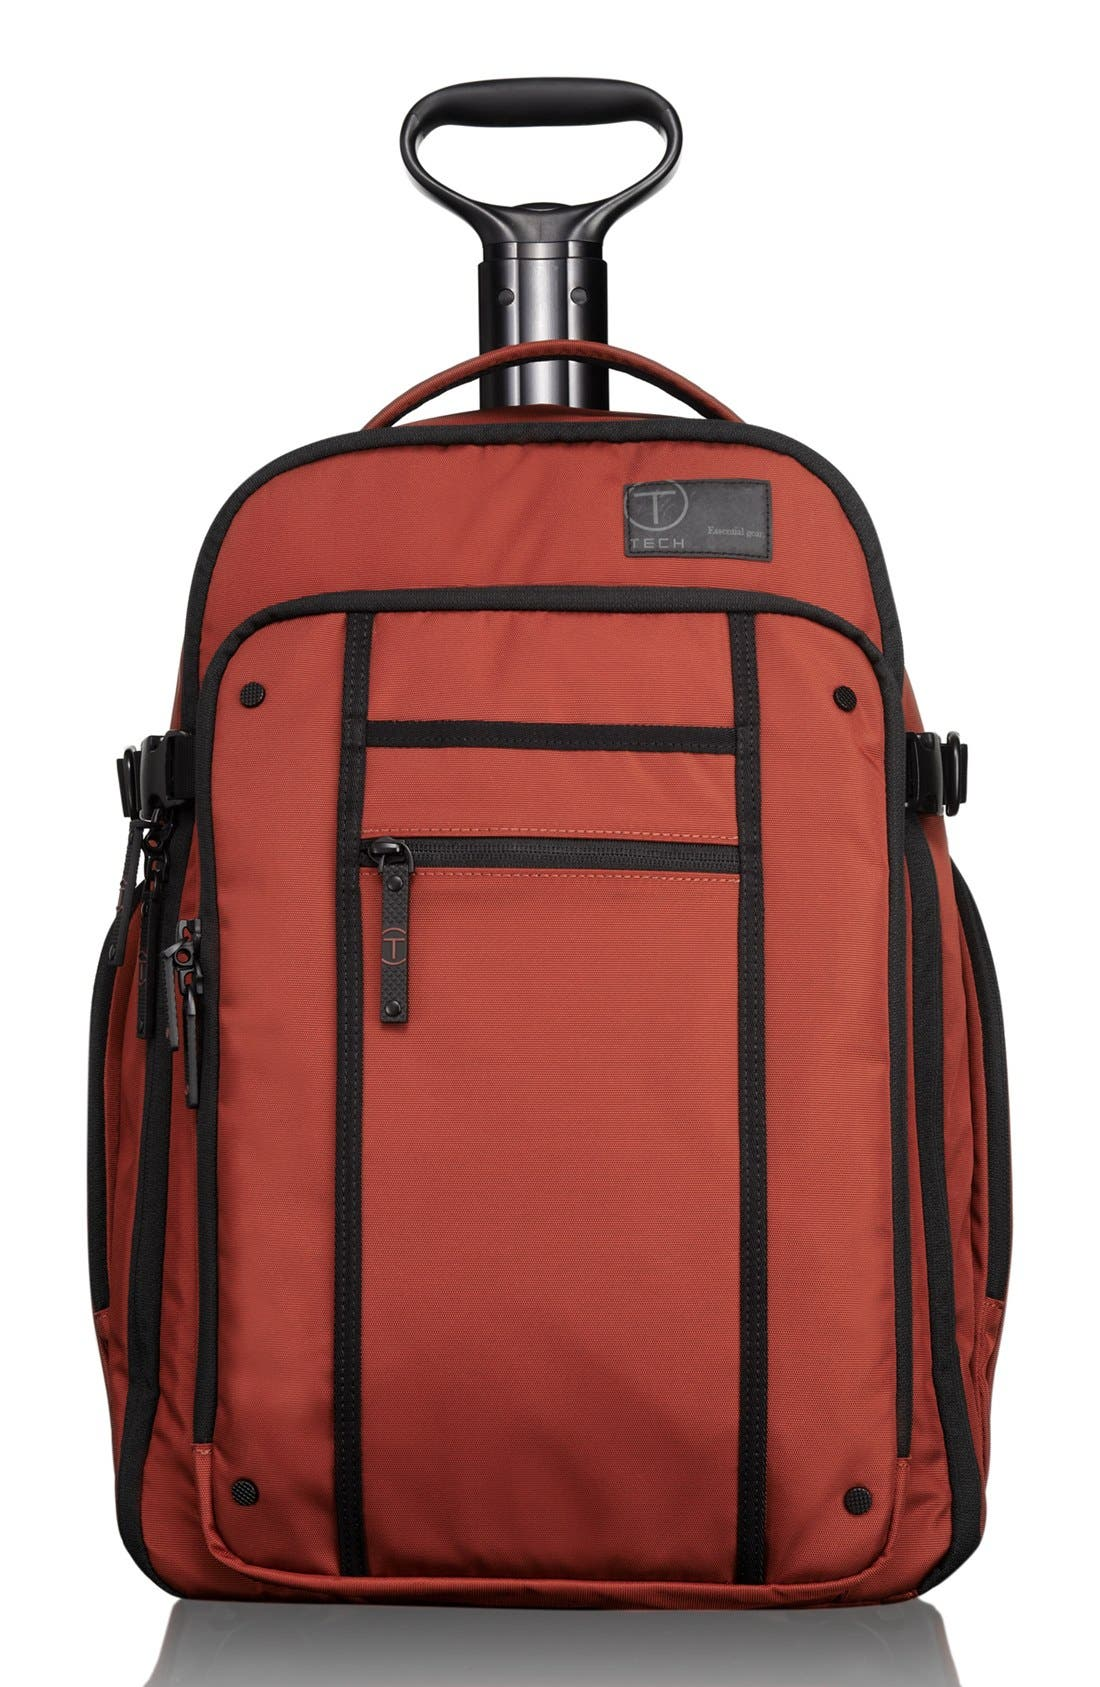 Alternate Image 1 Selected - T-Tech by Tumi 'Icon - Jerry' Wheeled Backpack